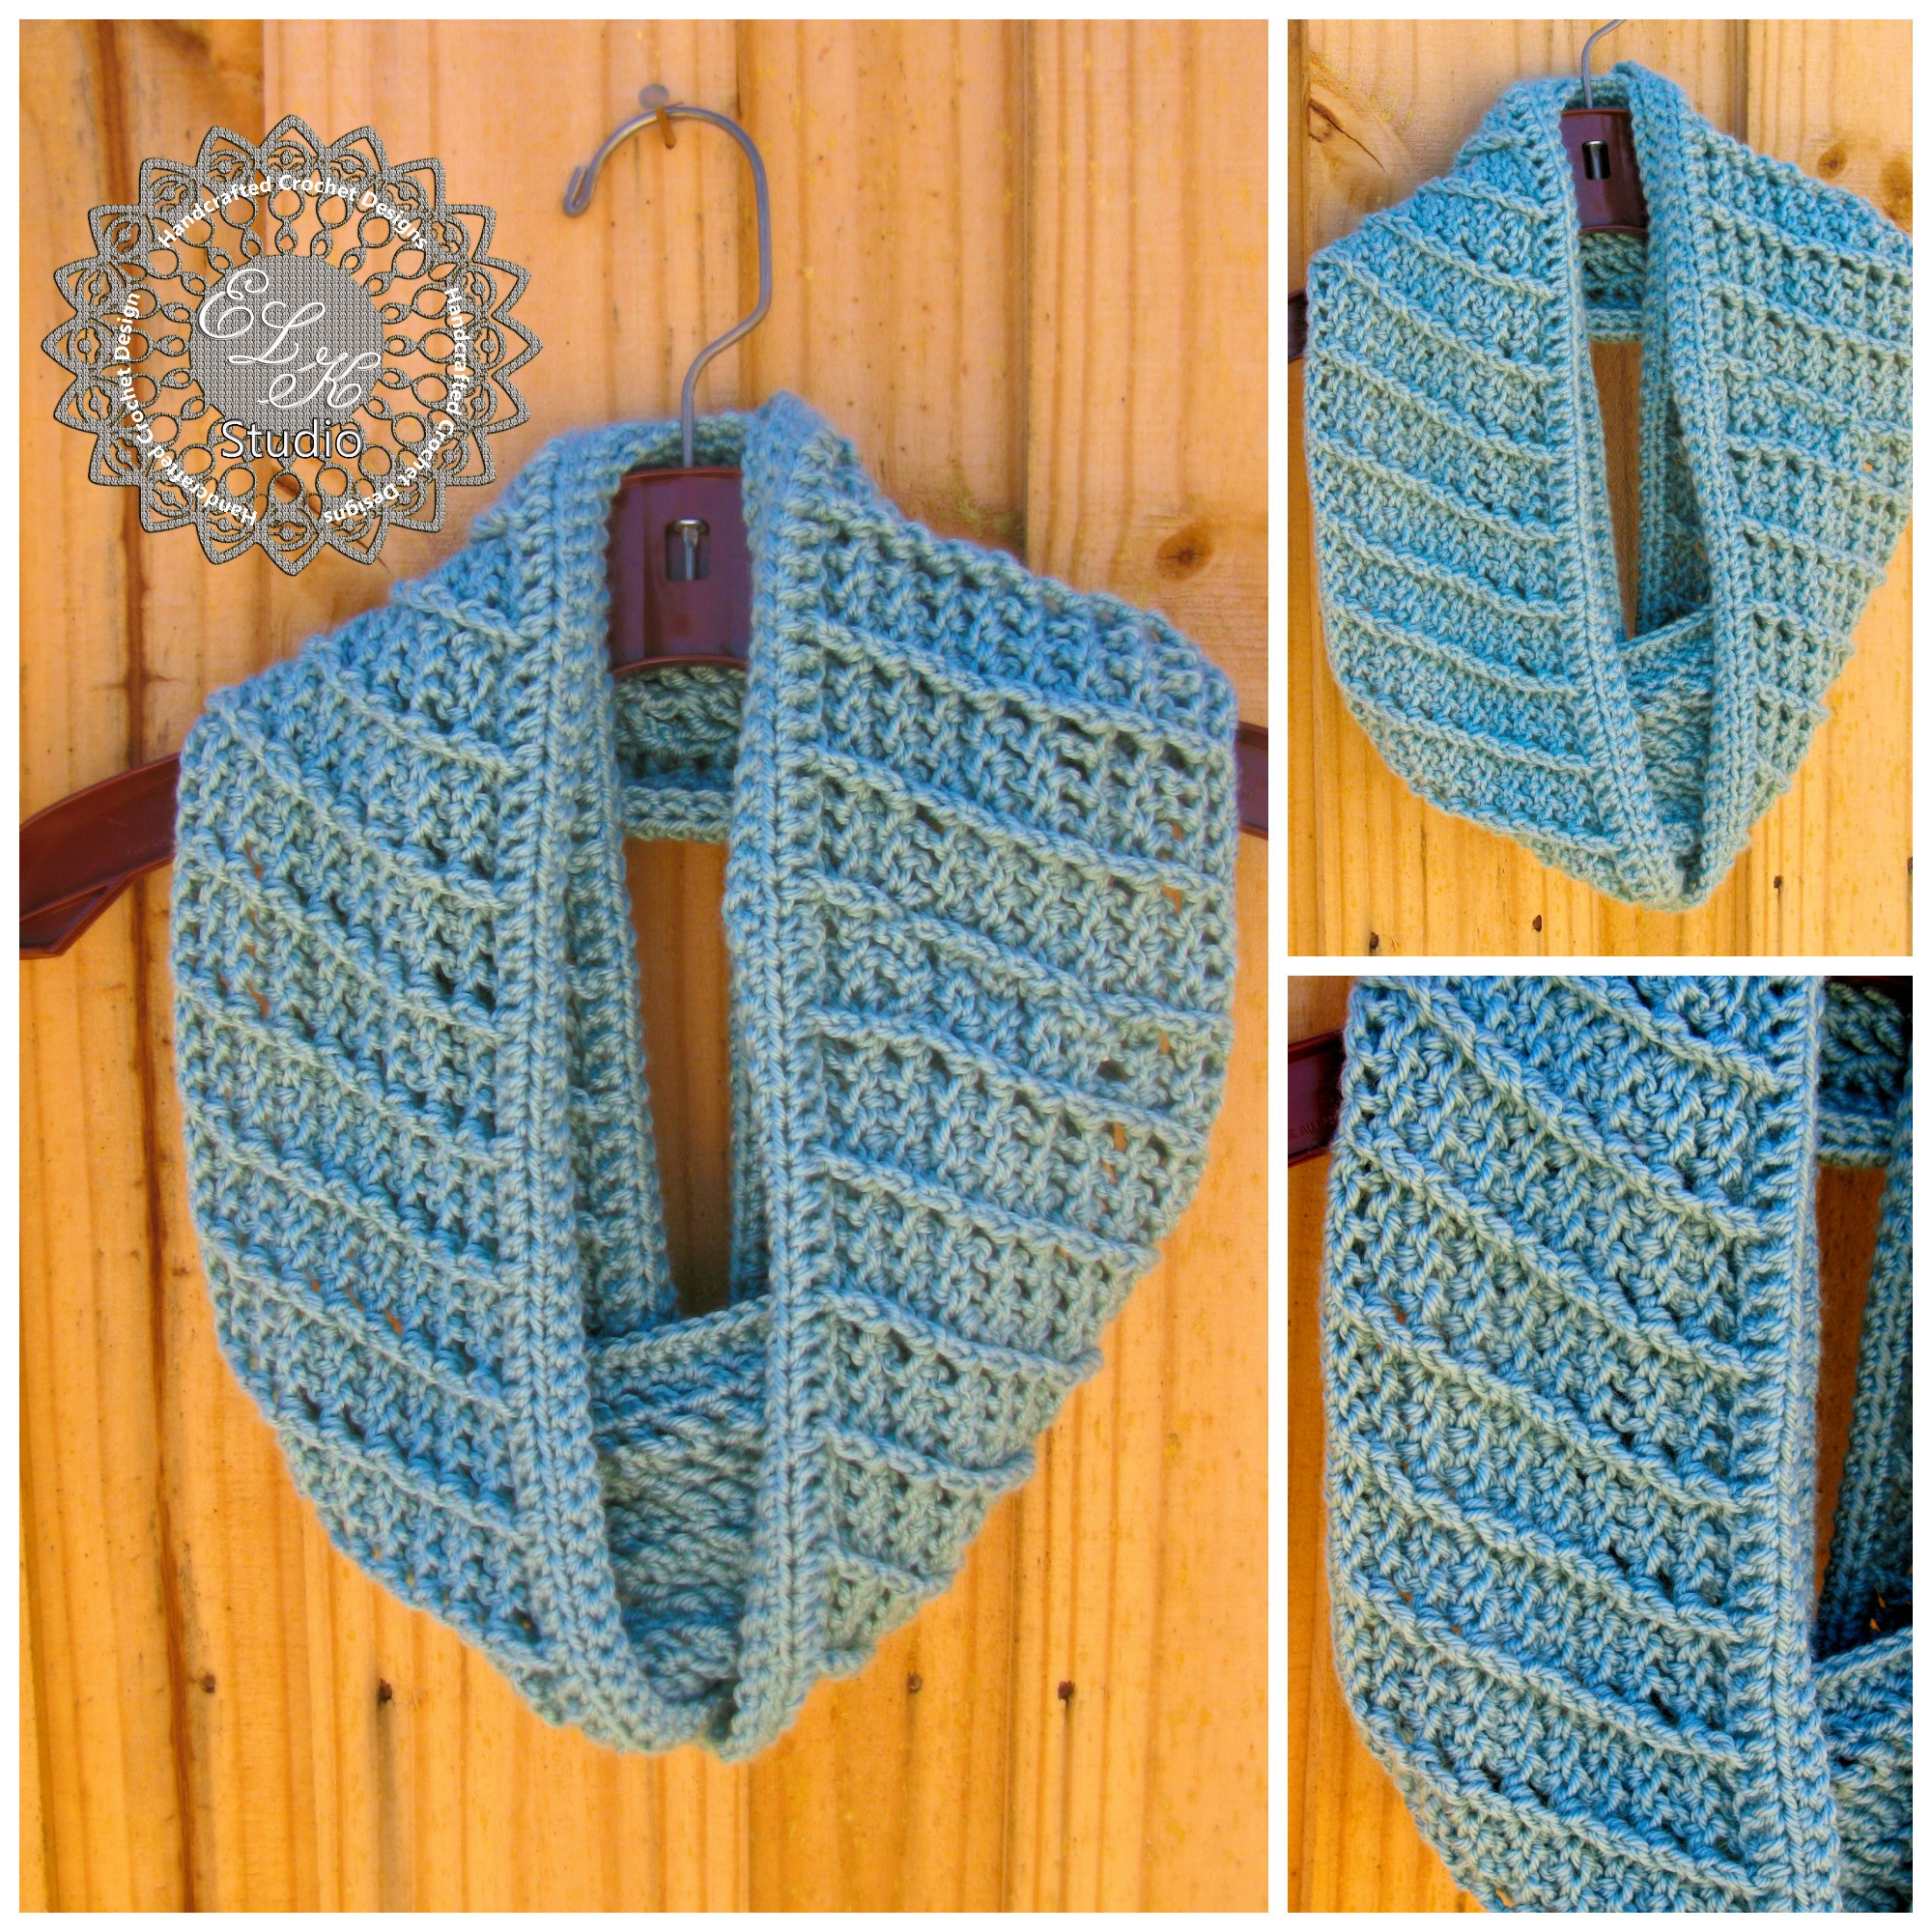 Infinity Scarf Crochet Pattern Best Of Country Appeal A Free Crochet Infinity Scarf Pattern Of Fresh 49 Ideas Infinity Scarf Crochet Pattern